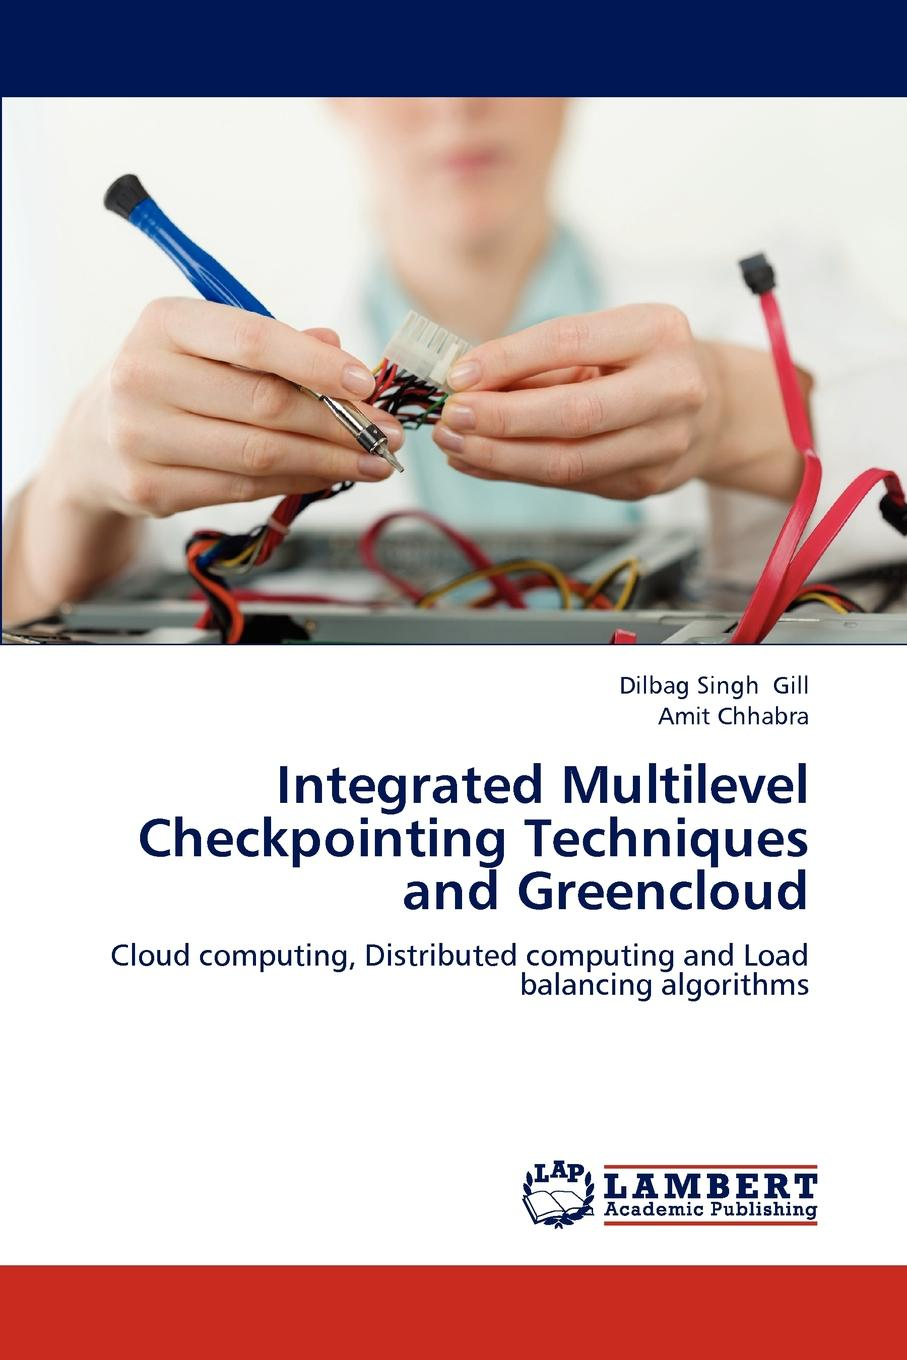 цена Dilbag Singh Gill, Amit Chhabra Integrated Multilevel Checkpointing Techniques and Greencloud онлайн в 2017 году